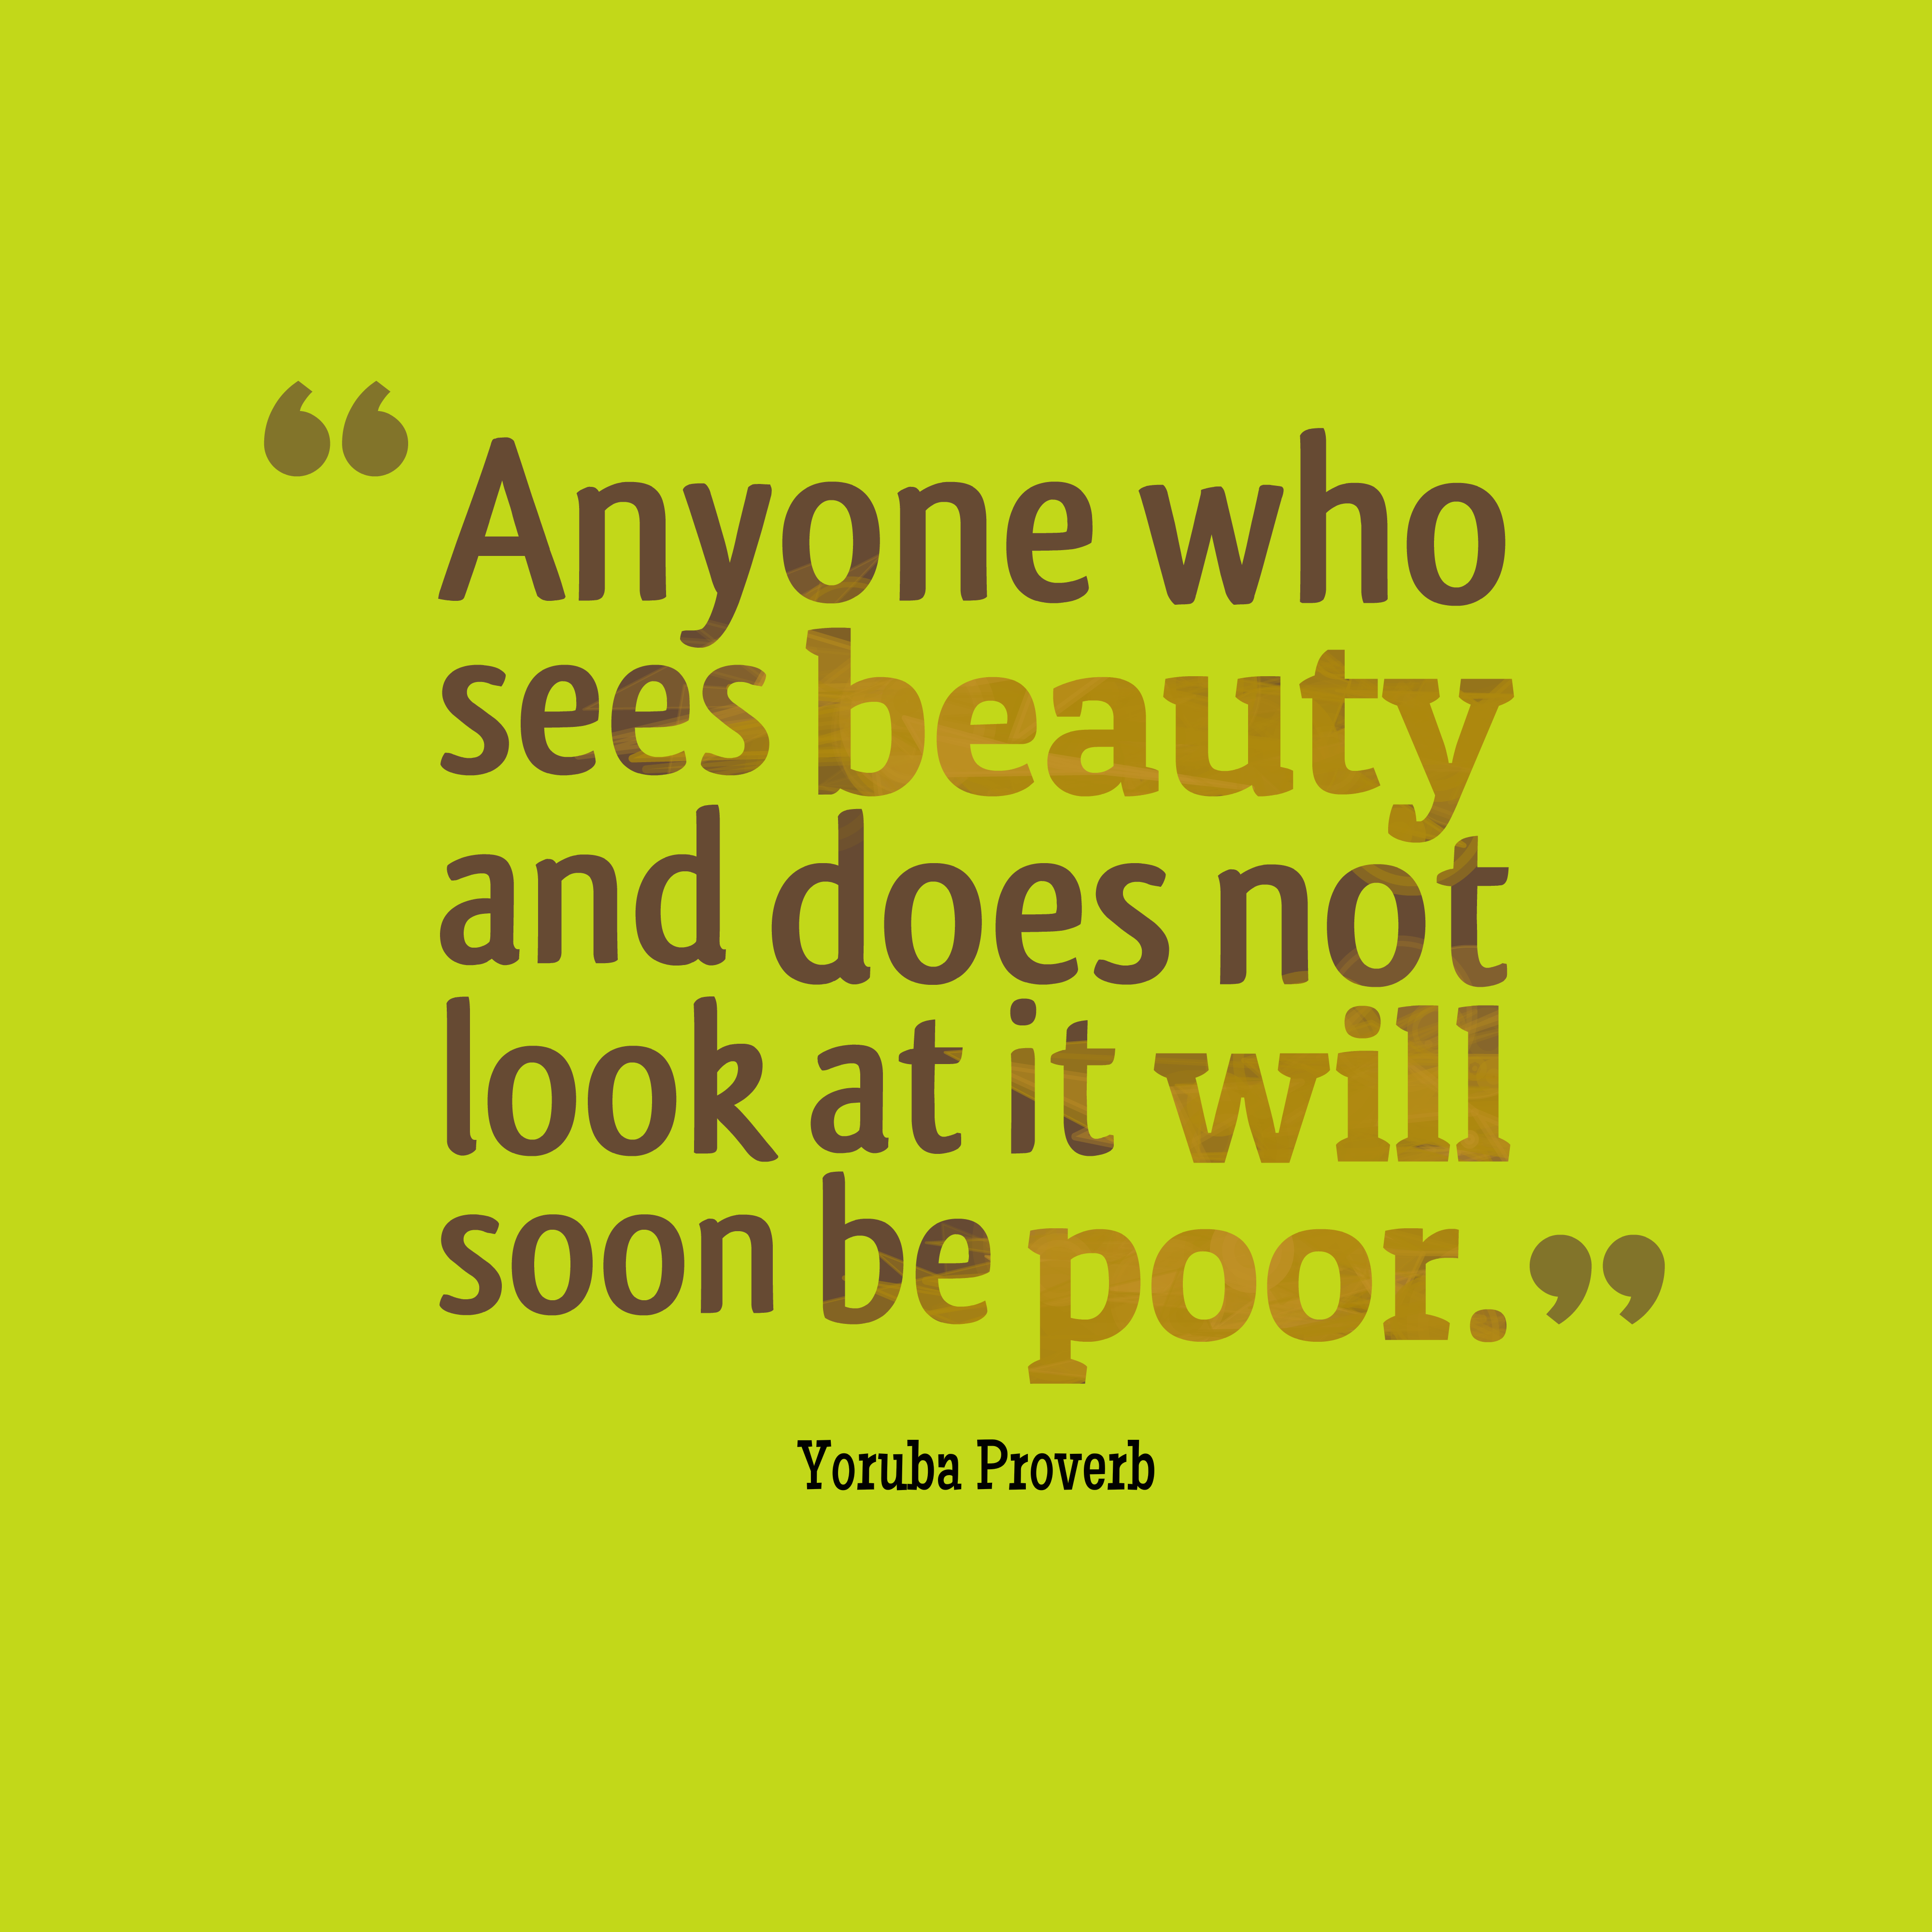 Quotes image of Anyone who sees beauty and does not look at it will soon be poor.